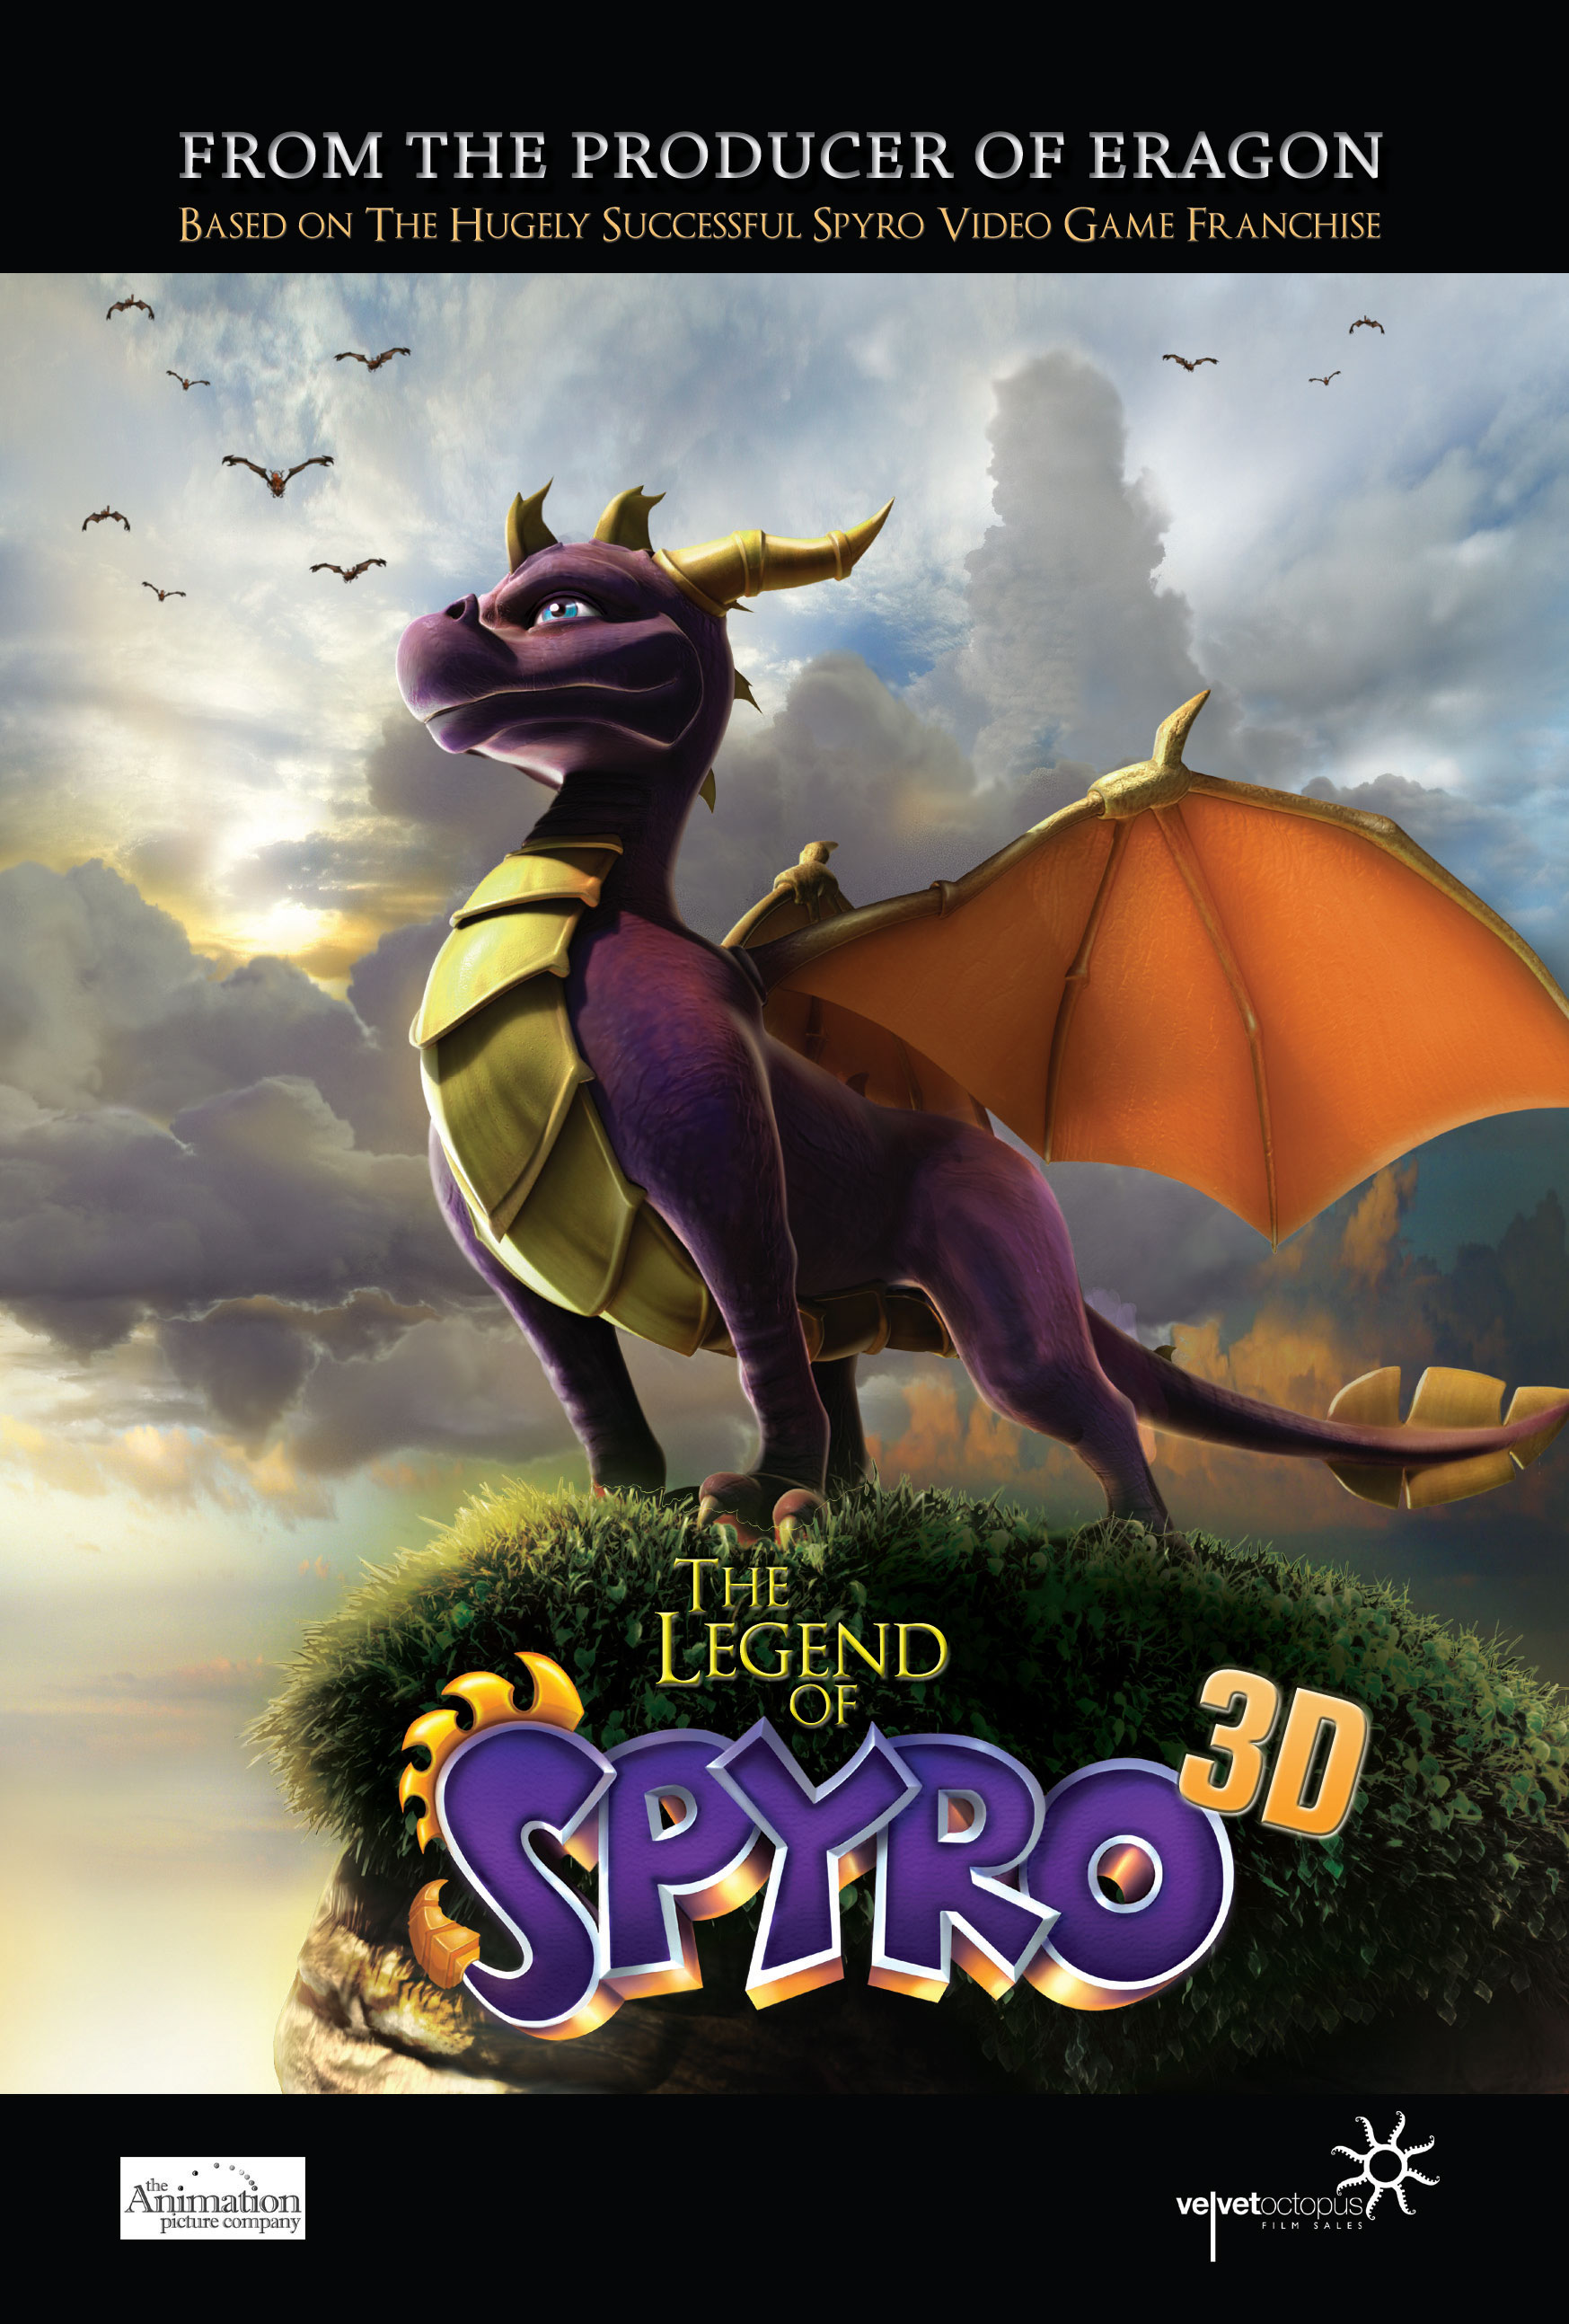 Дракон Спайро / The Legend of Spyro.